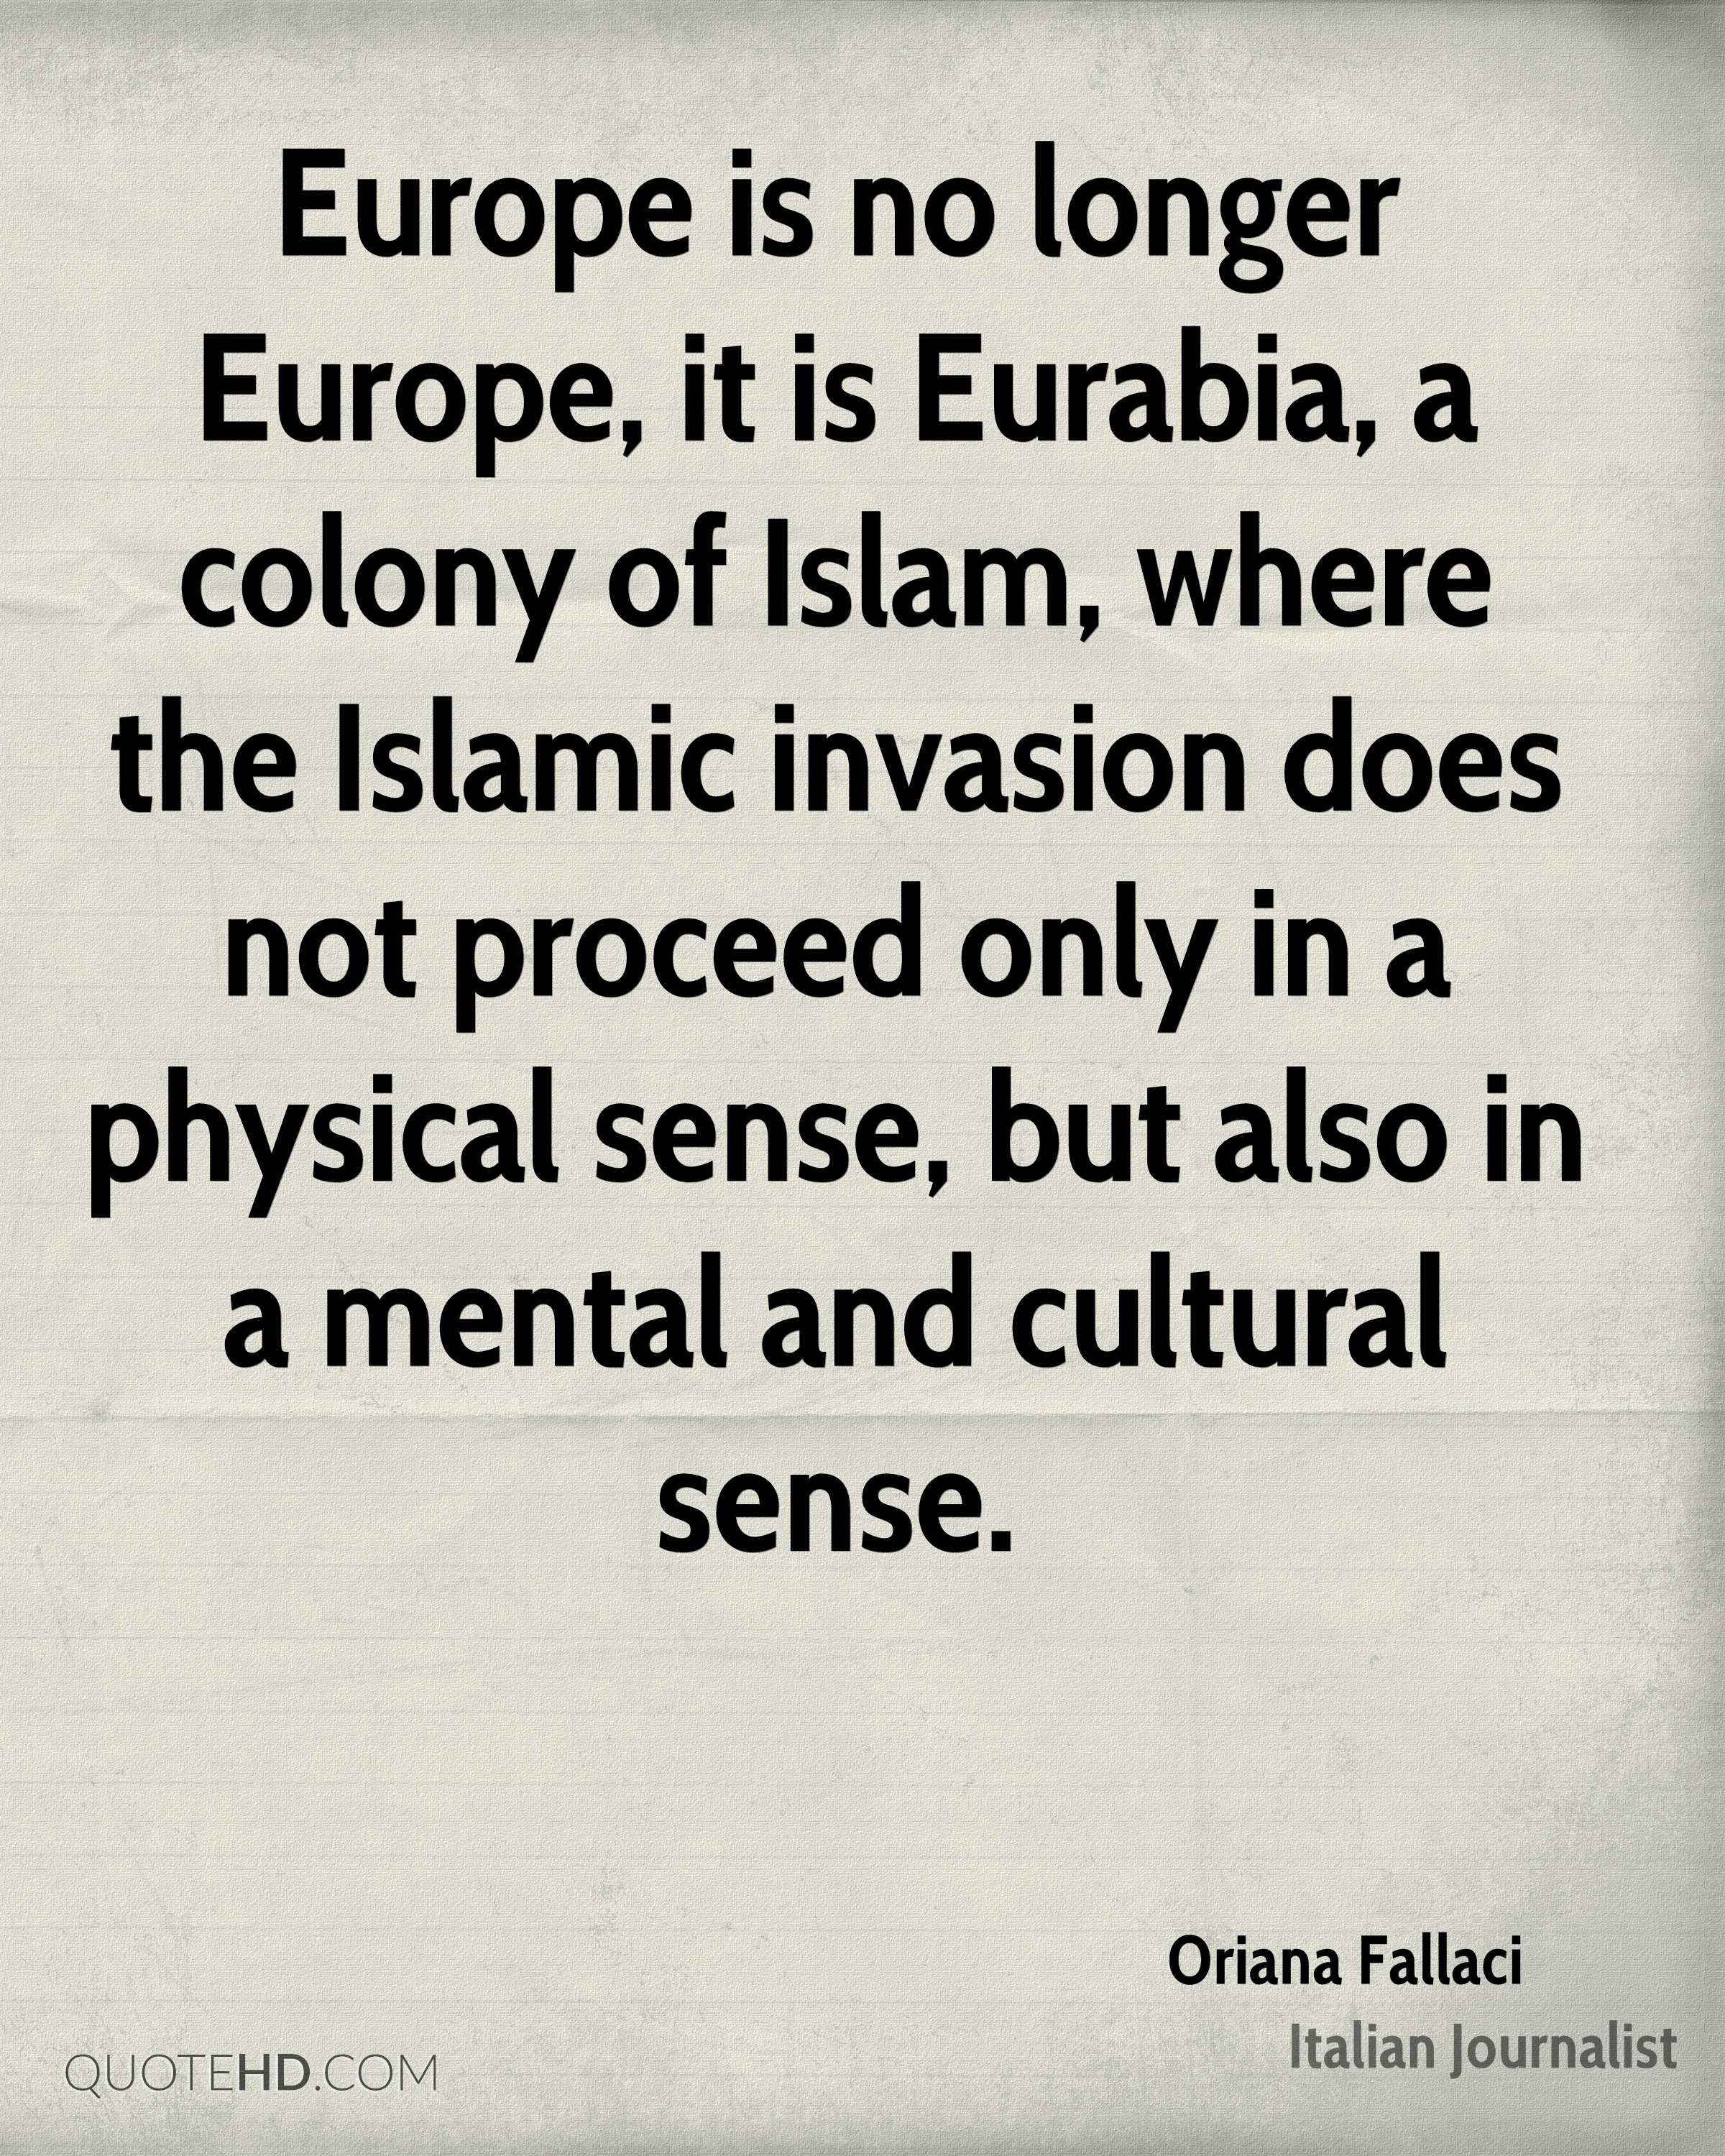 Europe is no longer Europe, it is Eurabia, a colony of Islam, where the Islamic invasion does not proceed only in a physical sense, but also in a mental and cultural sense.